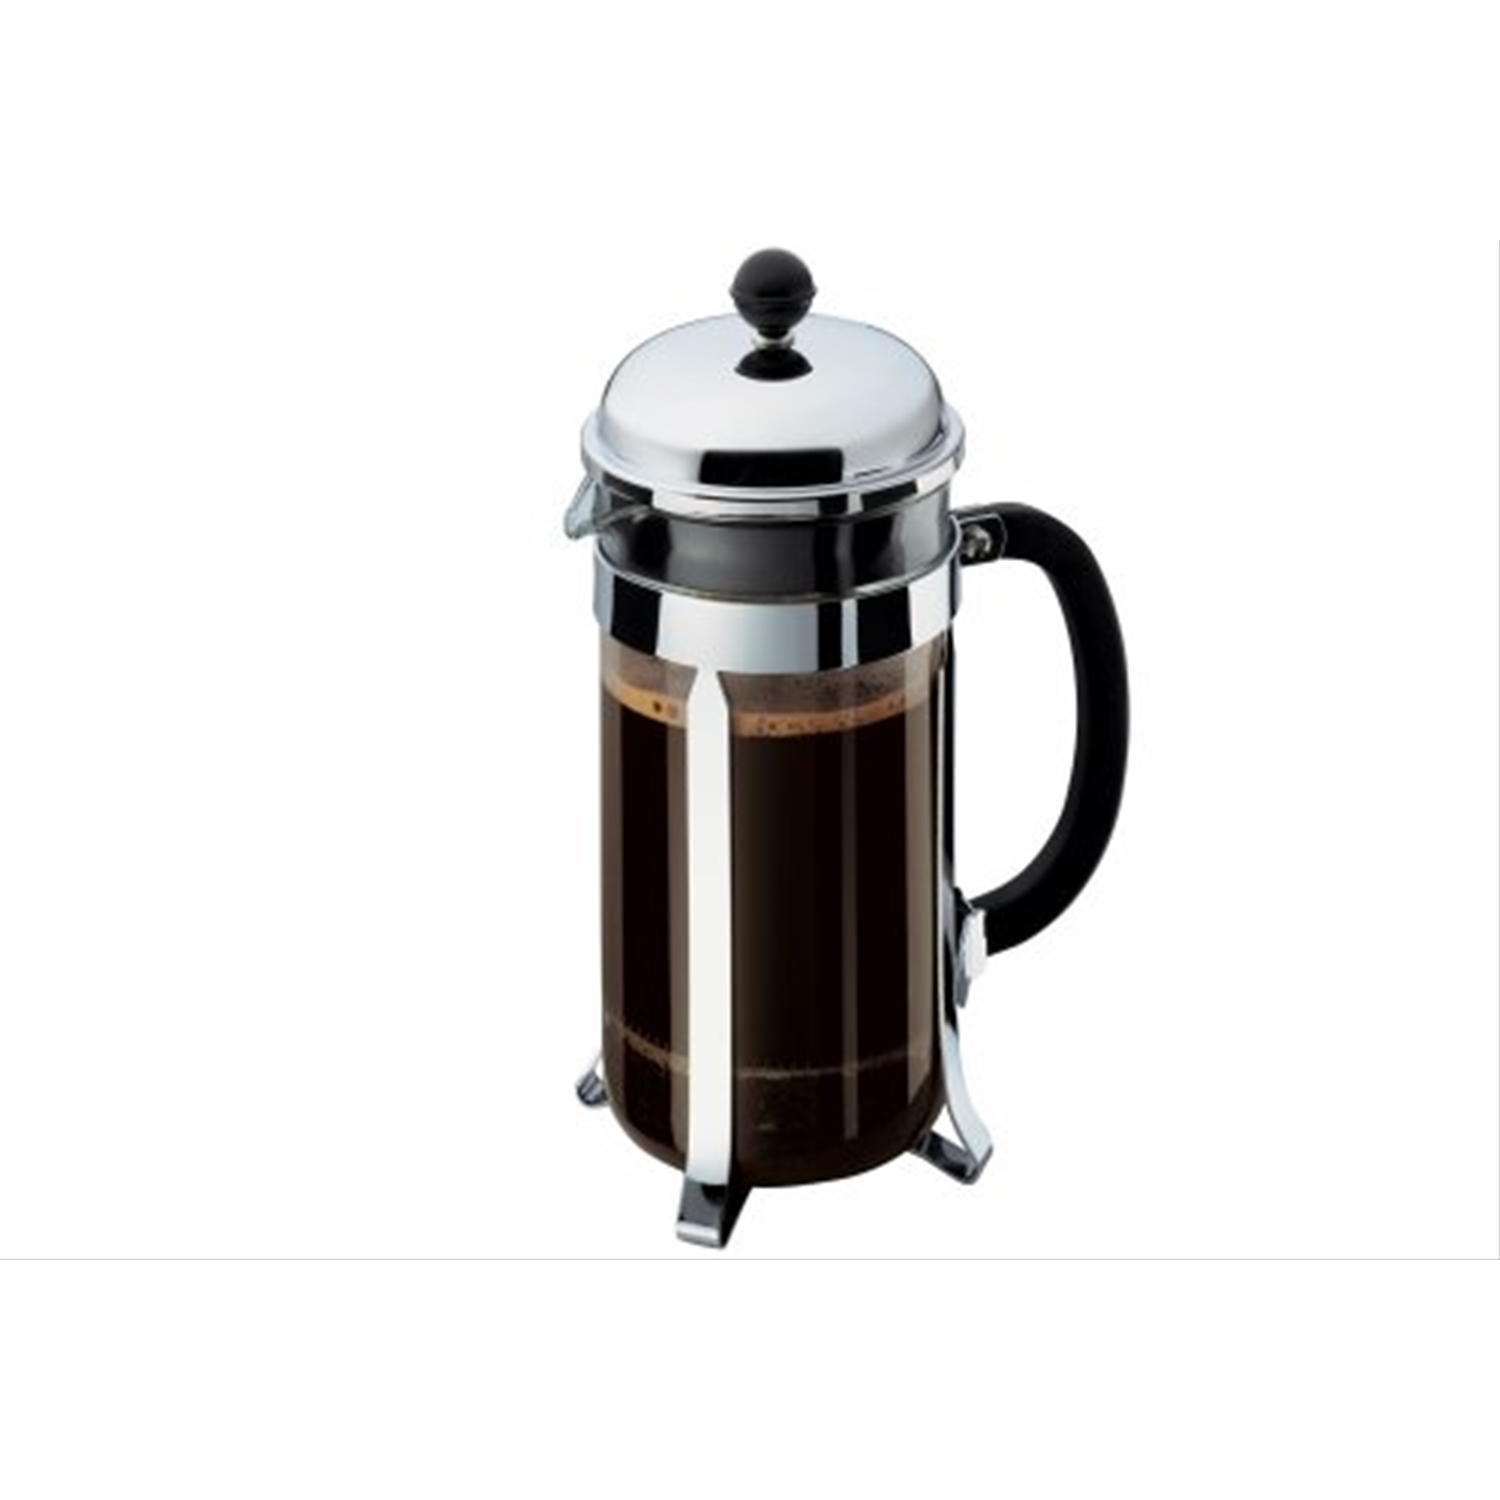 Image of Bodum Chambord 8 Cup Coffee Maker